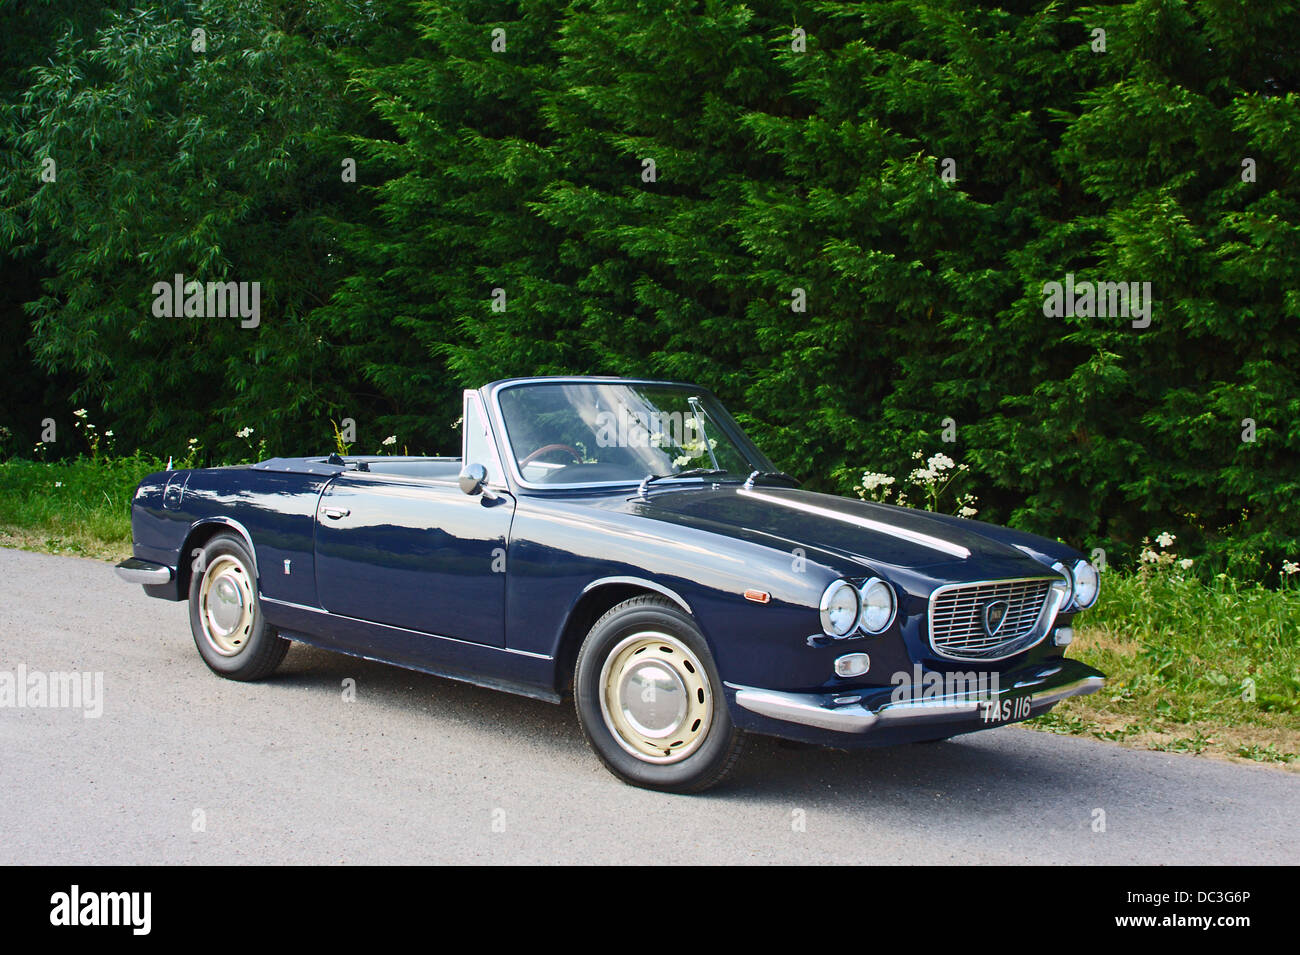 1964 lancia flavia vignale convertible stock photo royalty free image 59085566 alamy. Black Bedroom Furniture Sets. Home Design Ideas